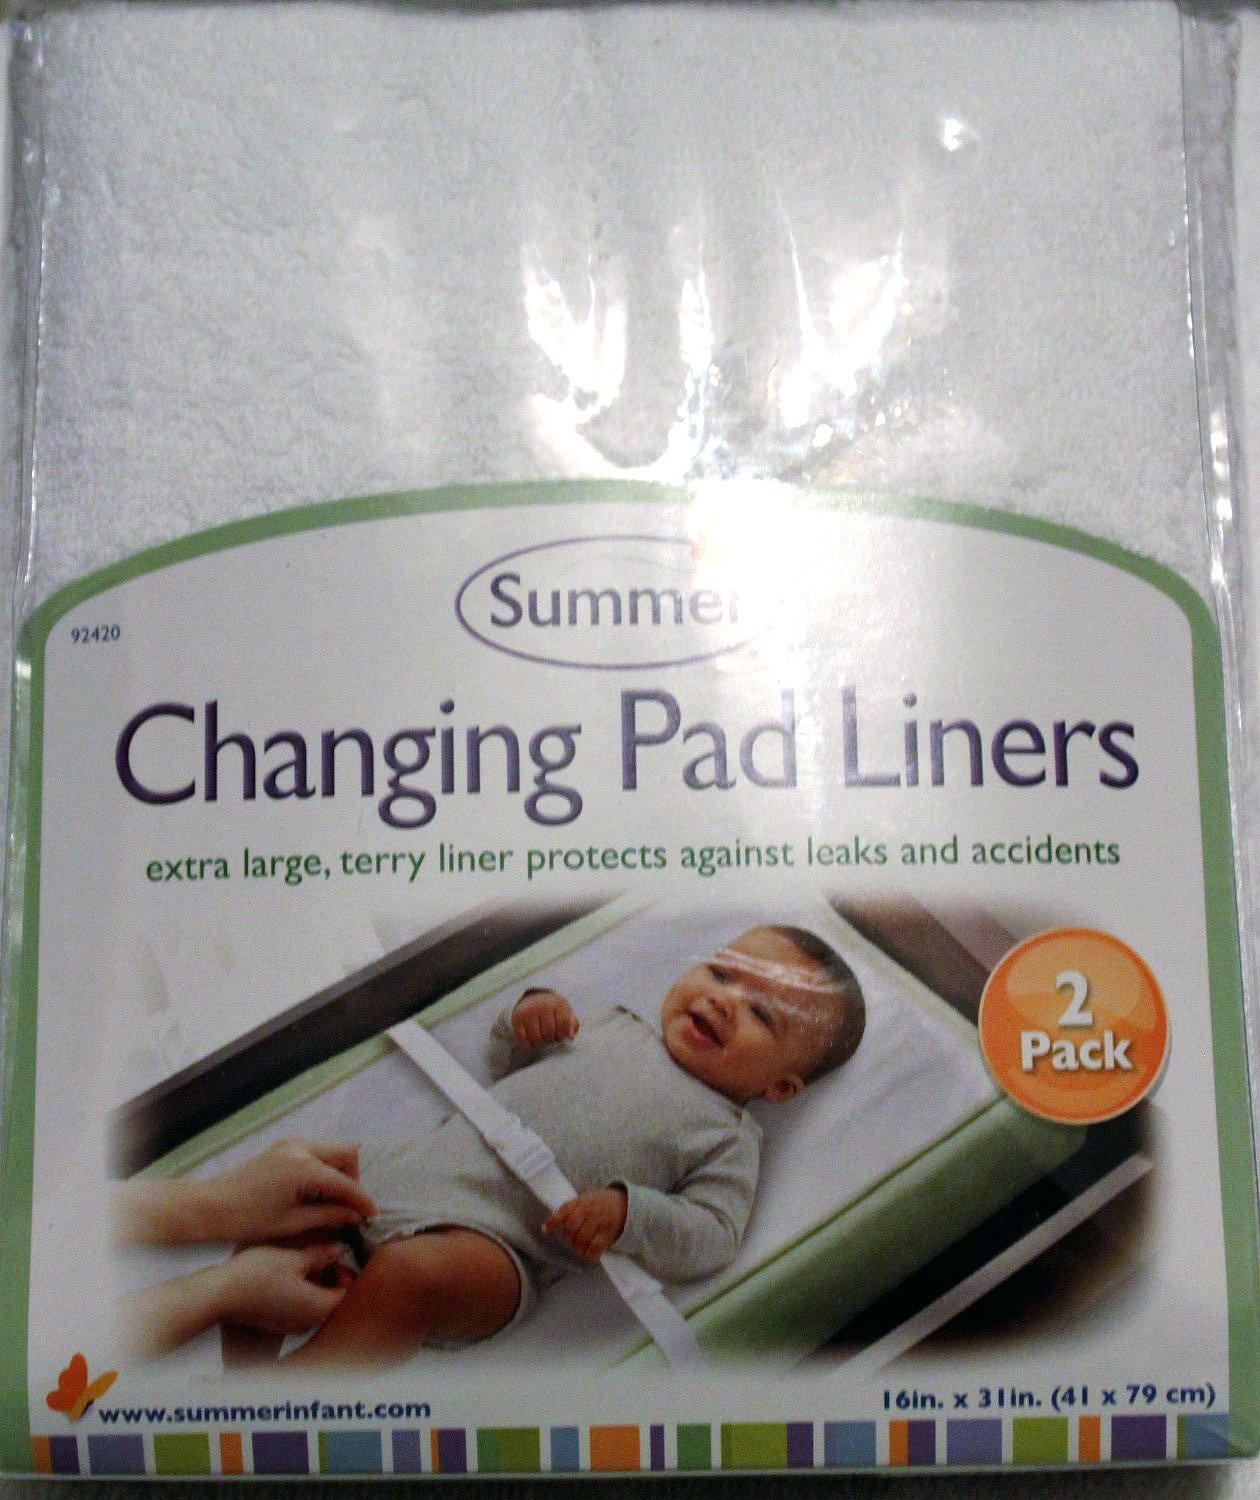 Summer Changing Terry Pad Liners (2 Pack)